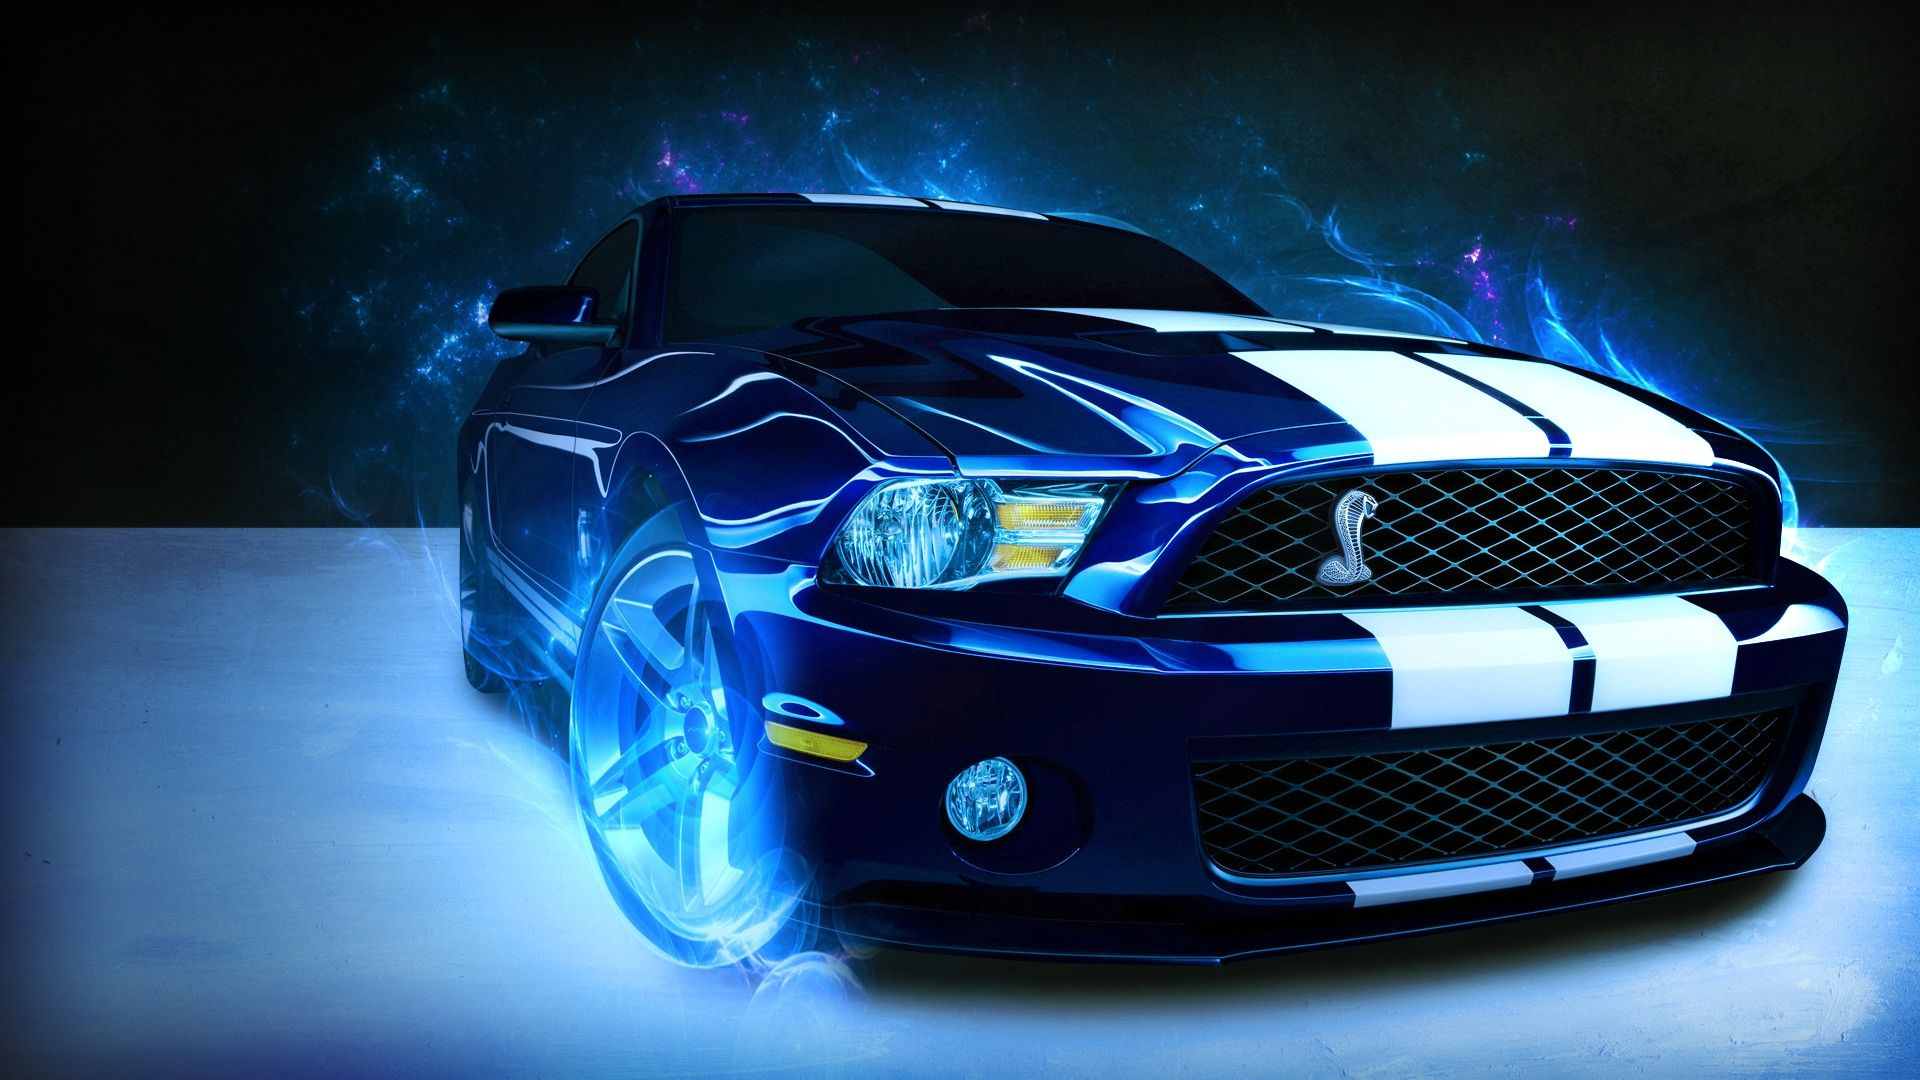 30 Hd Mustang Wallpapers For Free Download Ford Mustang Shelby